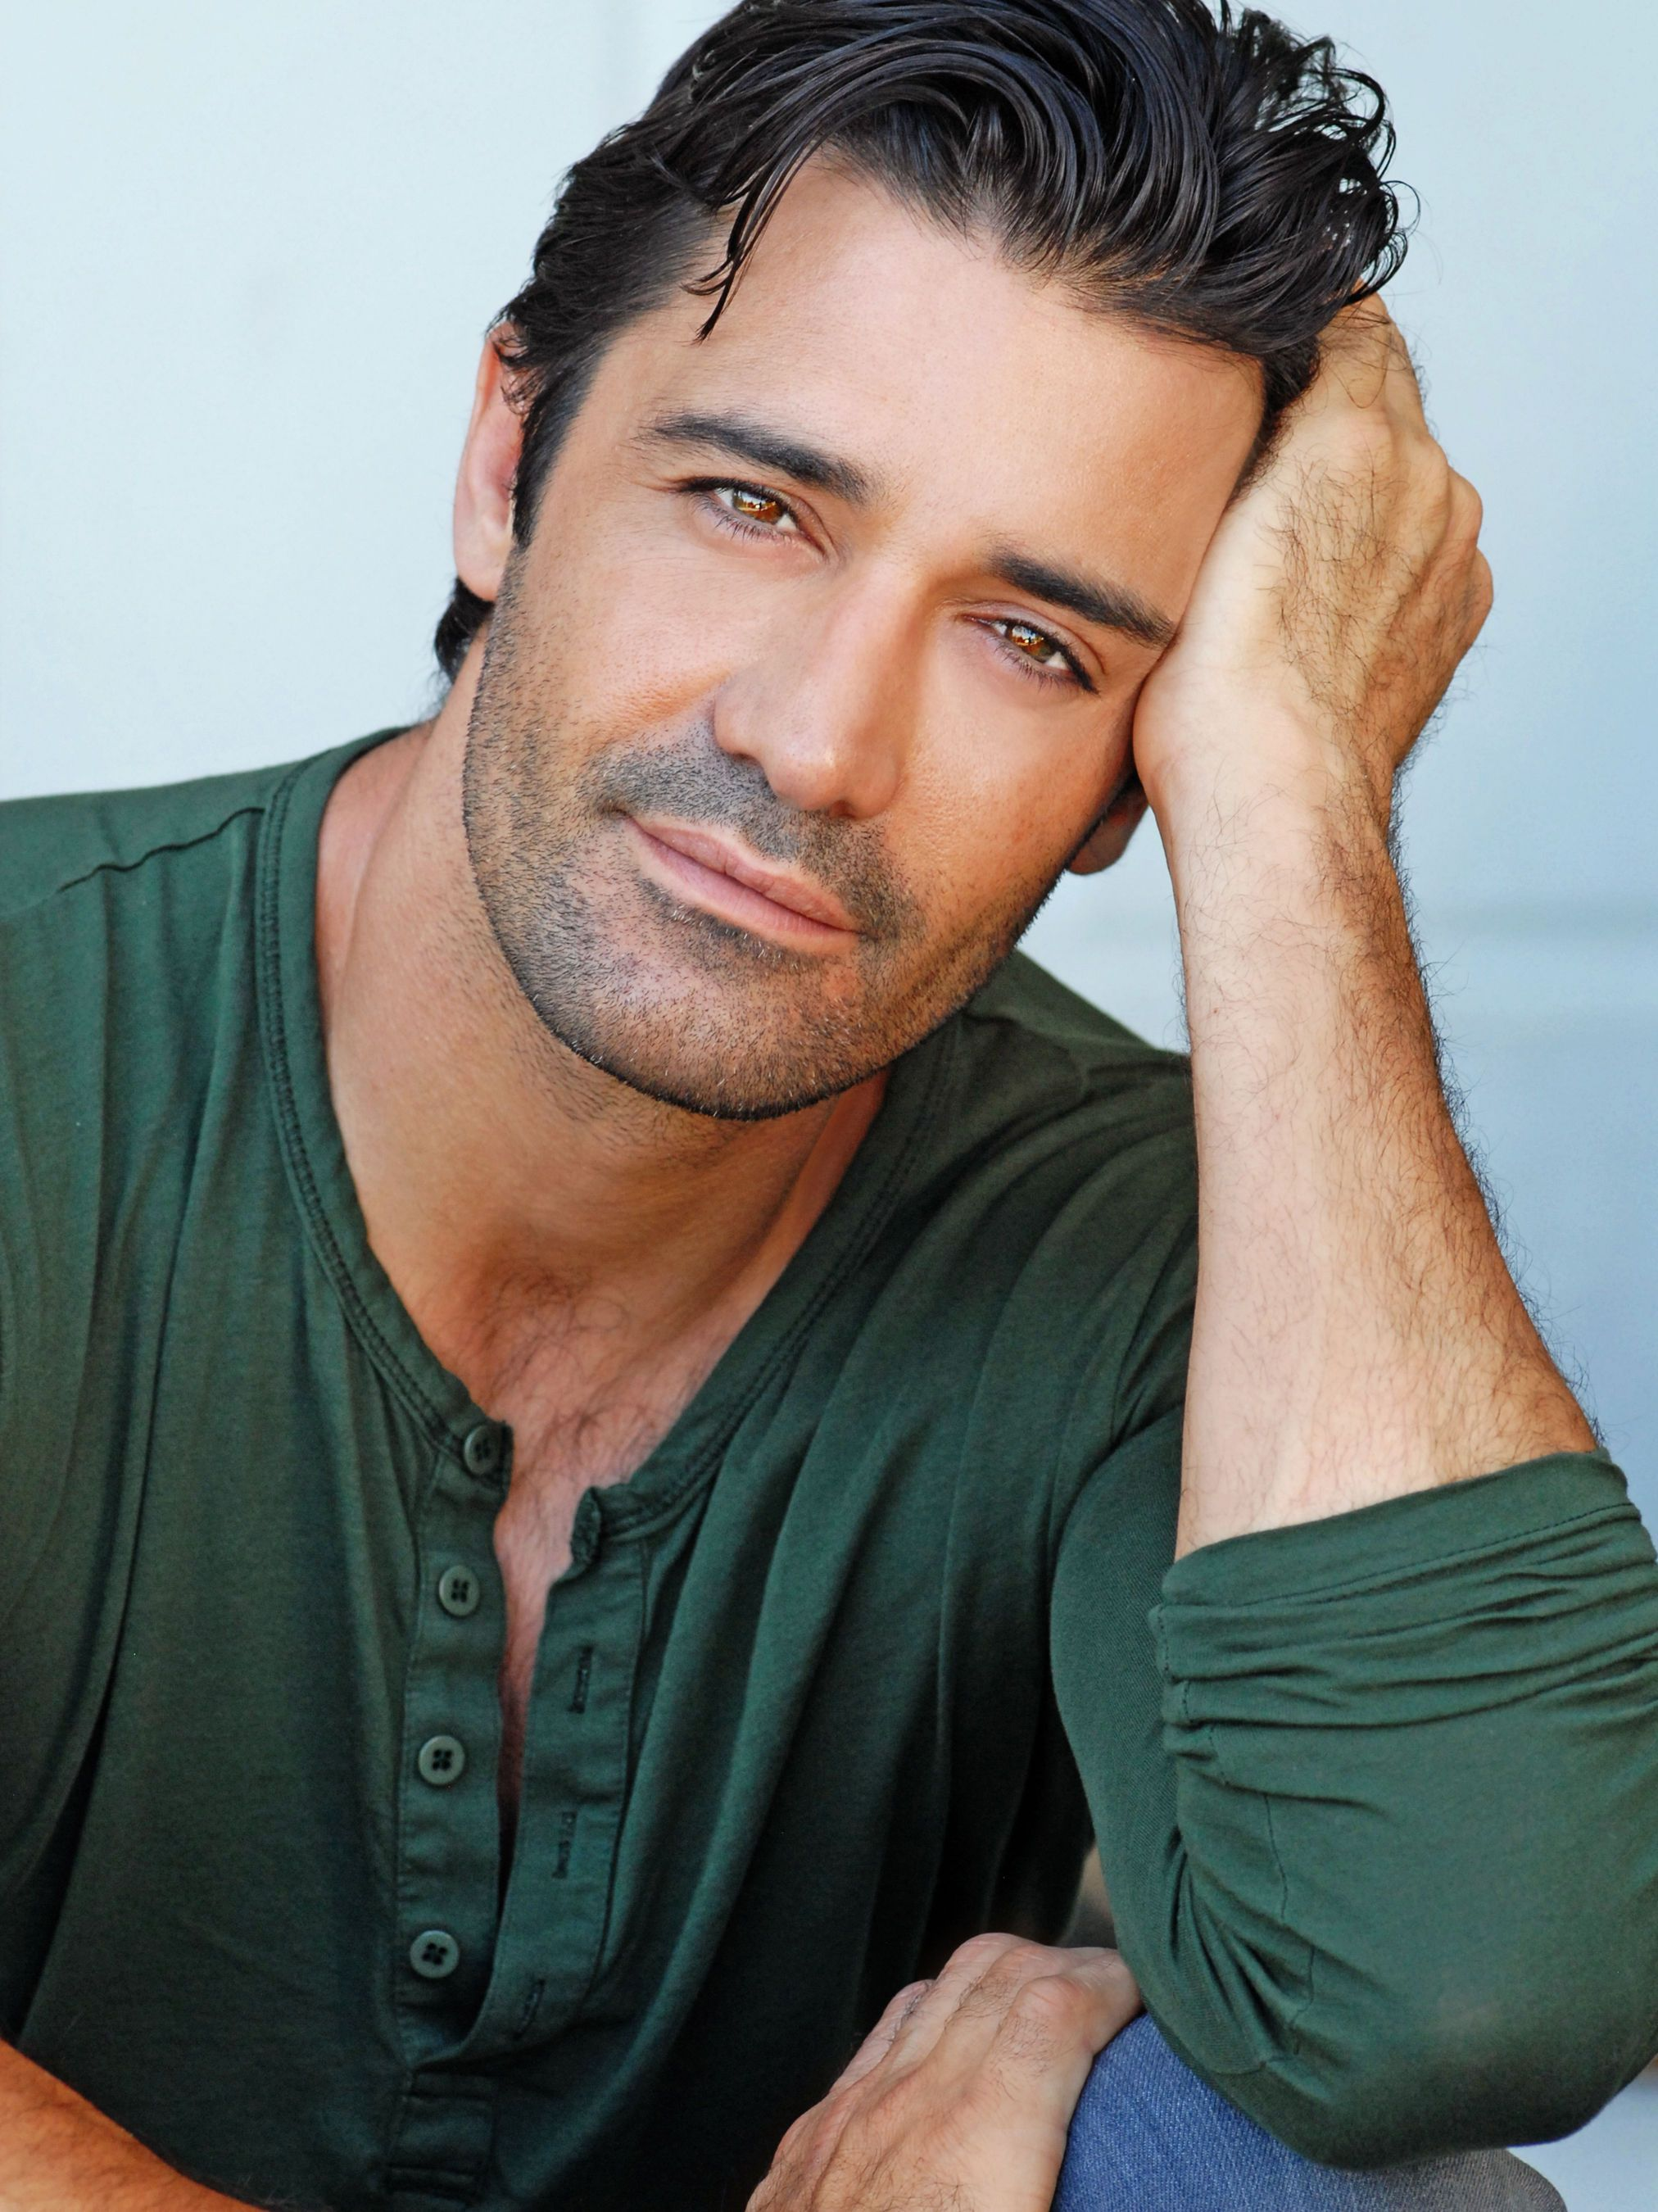 Interview: Catching up with Gilles Marini (Includes